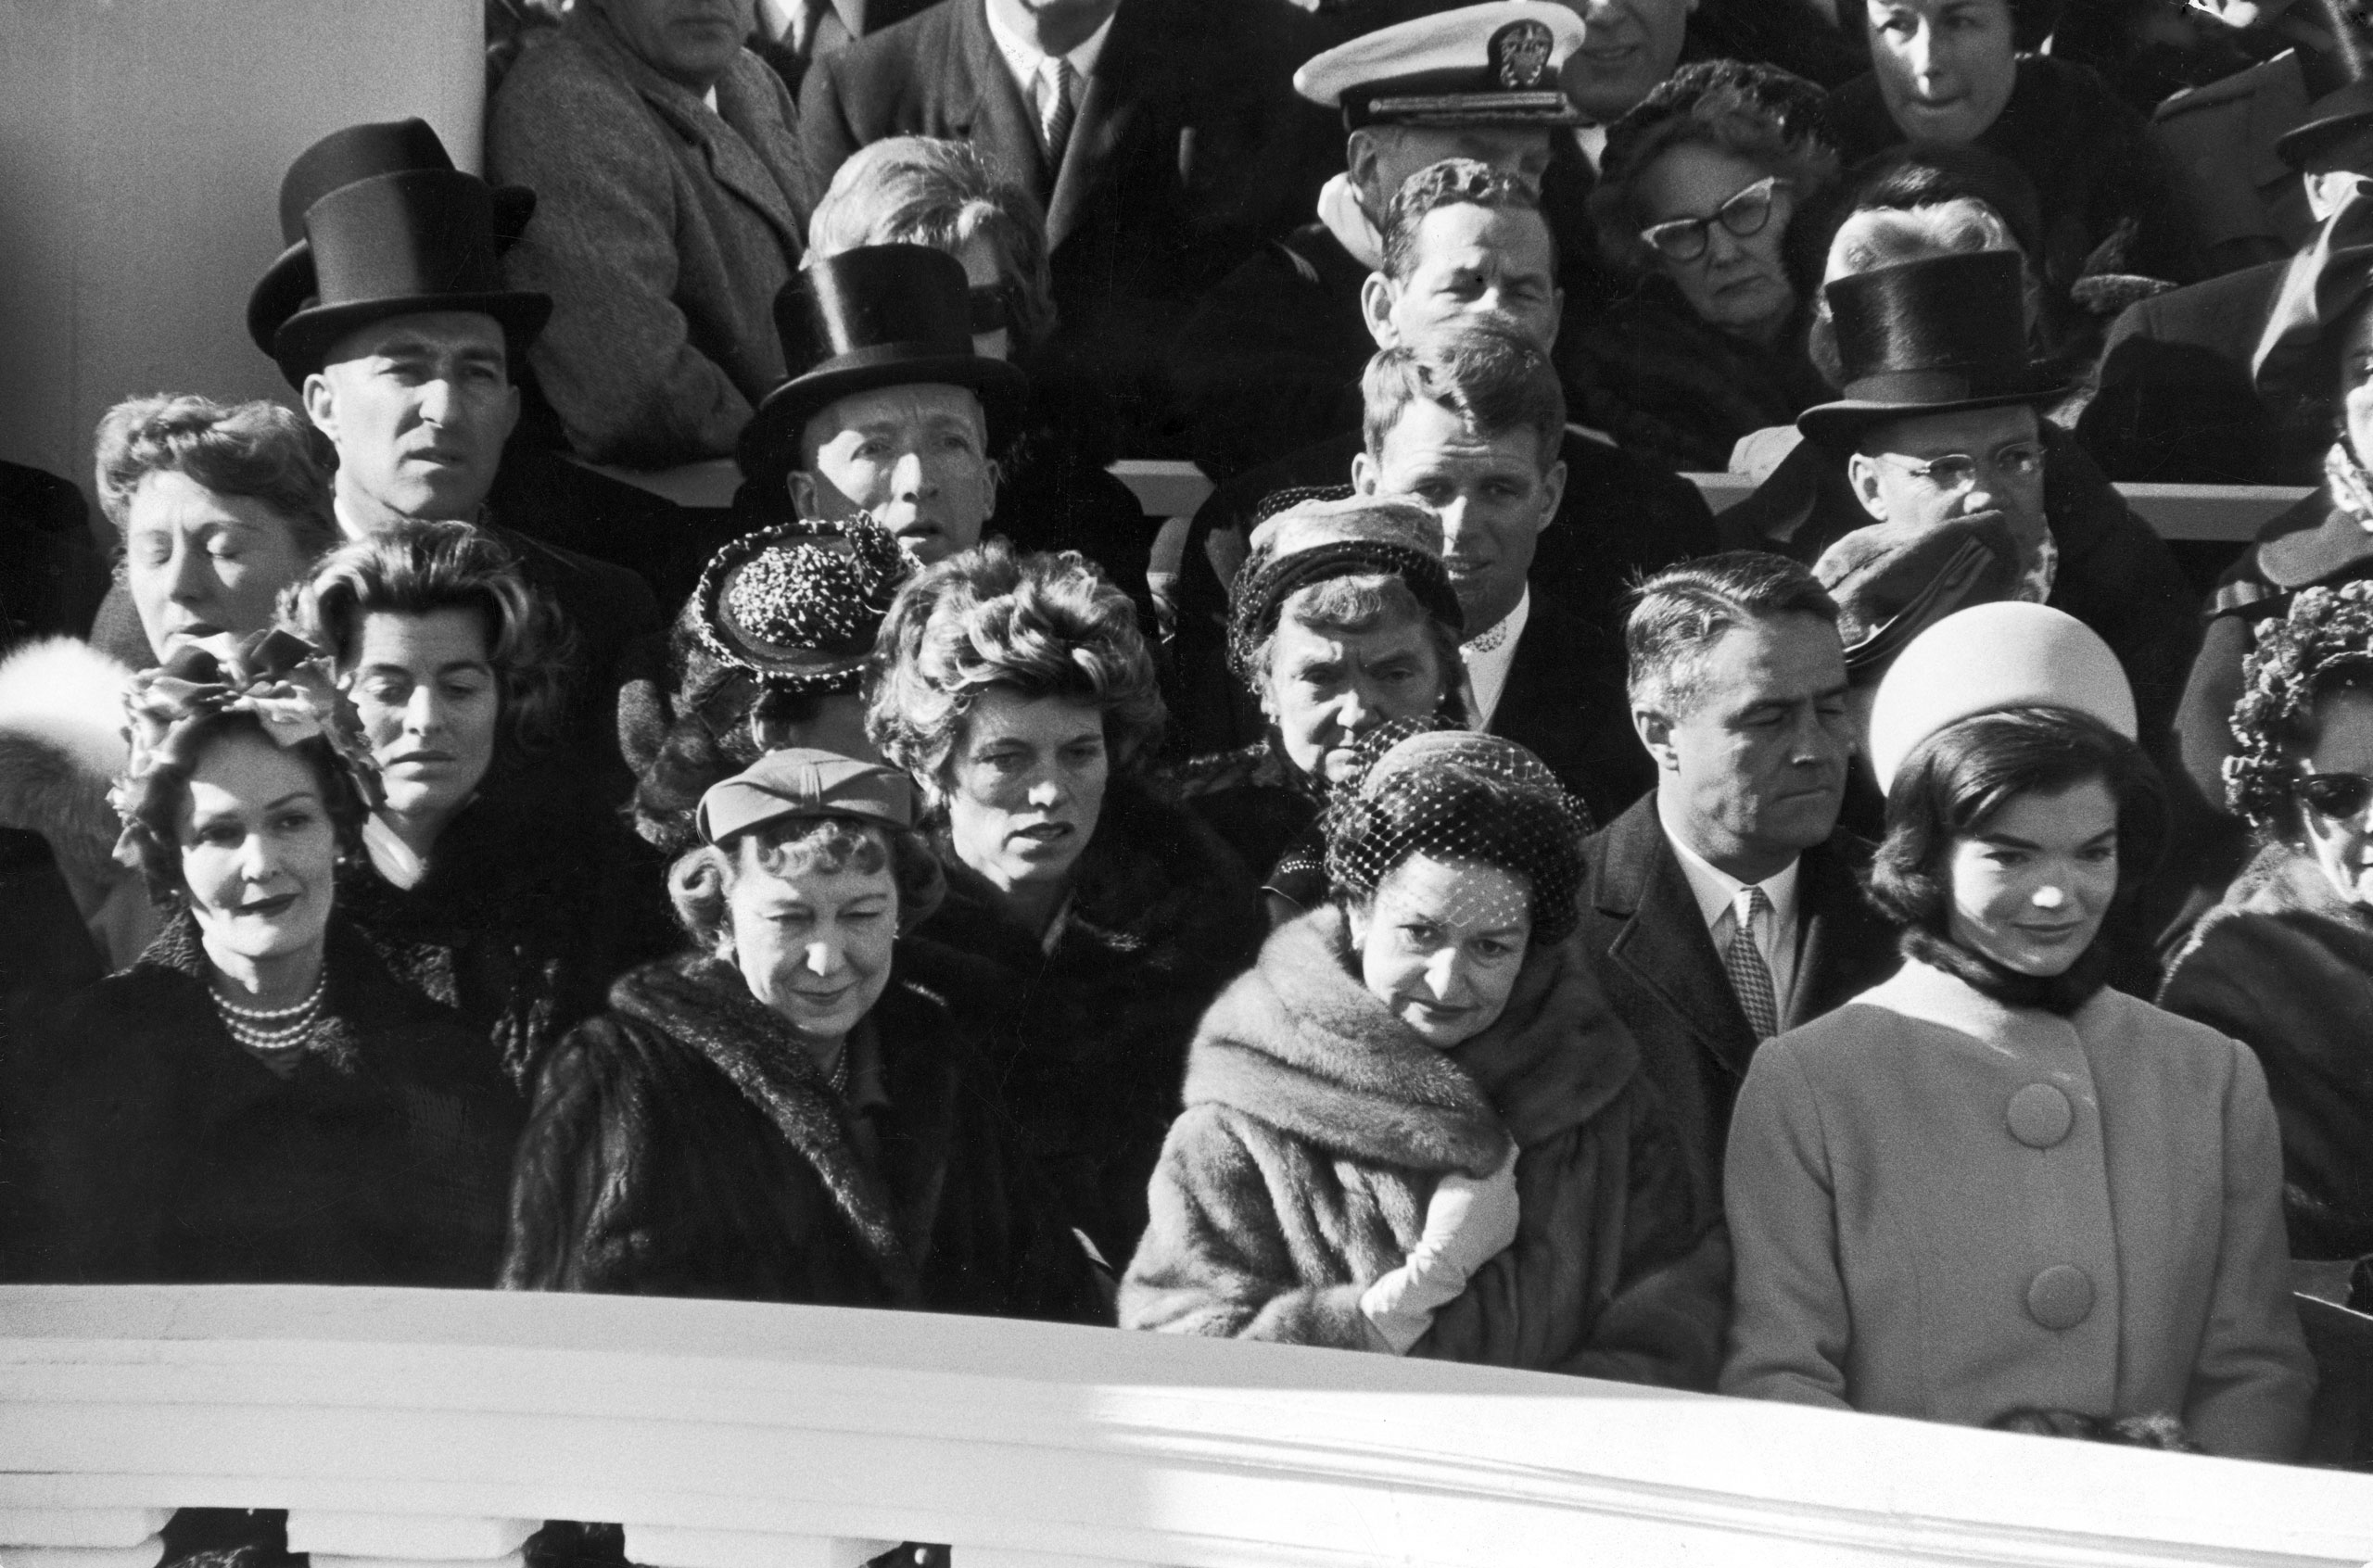 Four past, present and future first ladies at President John F. Kennedy's inauguration ceremony, including (L-R) Pat Nixon, Mamie Eisenhower, Lady Bird Johnson and new First Lady Jacqueline Kennedy, 1961.